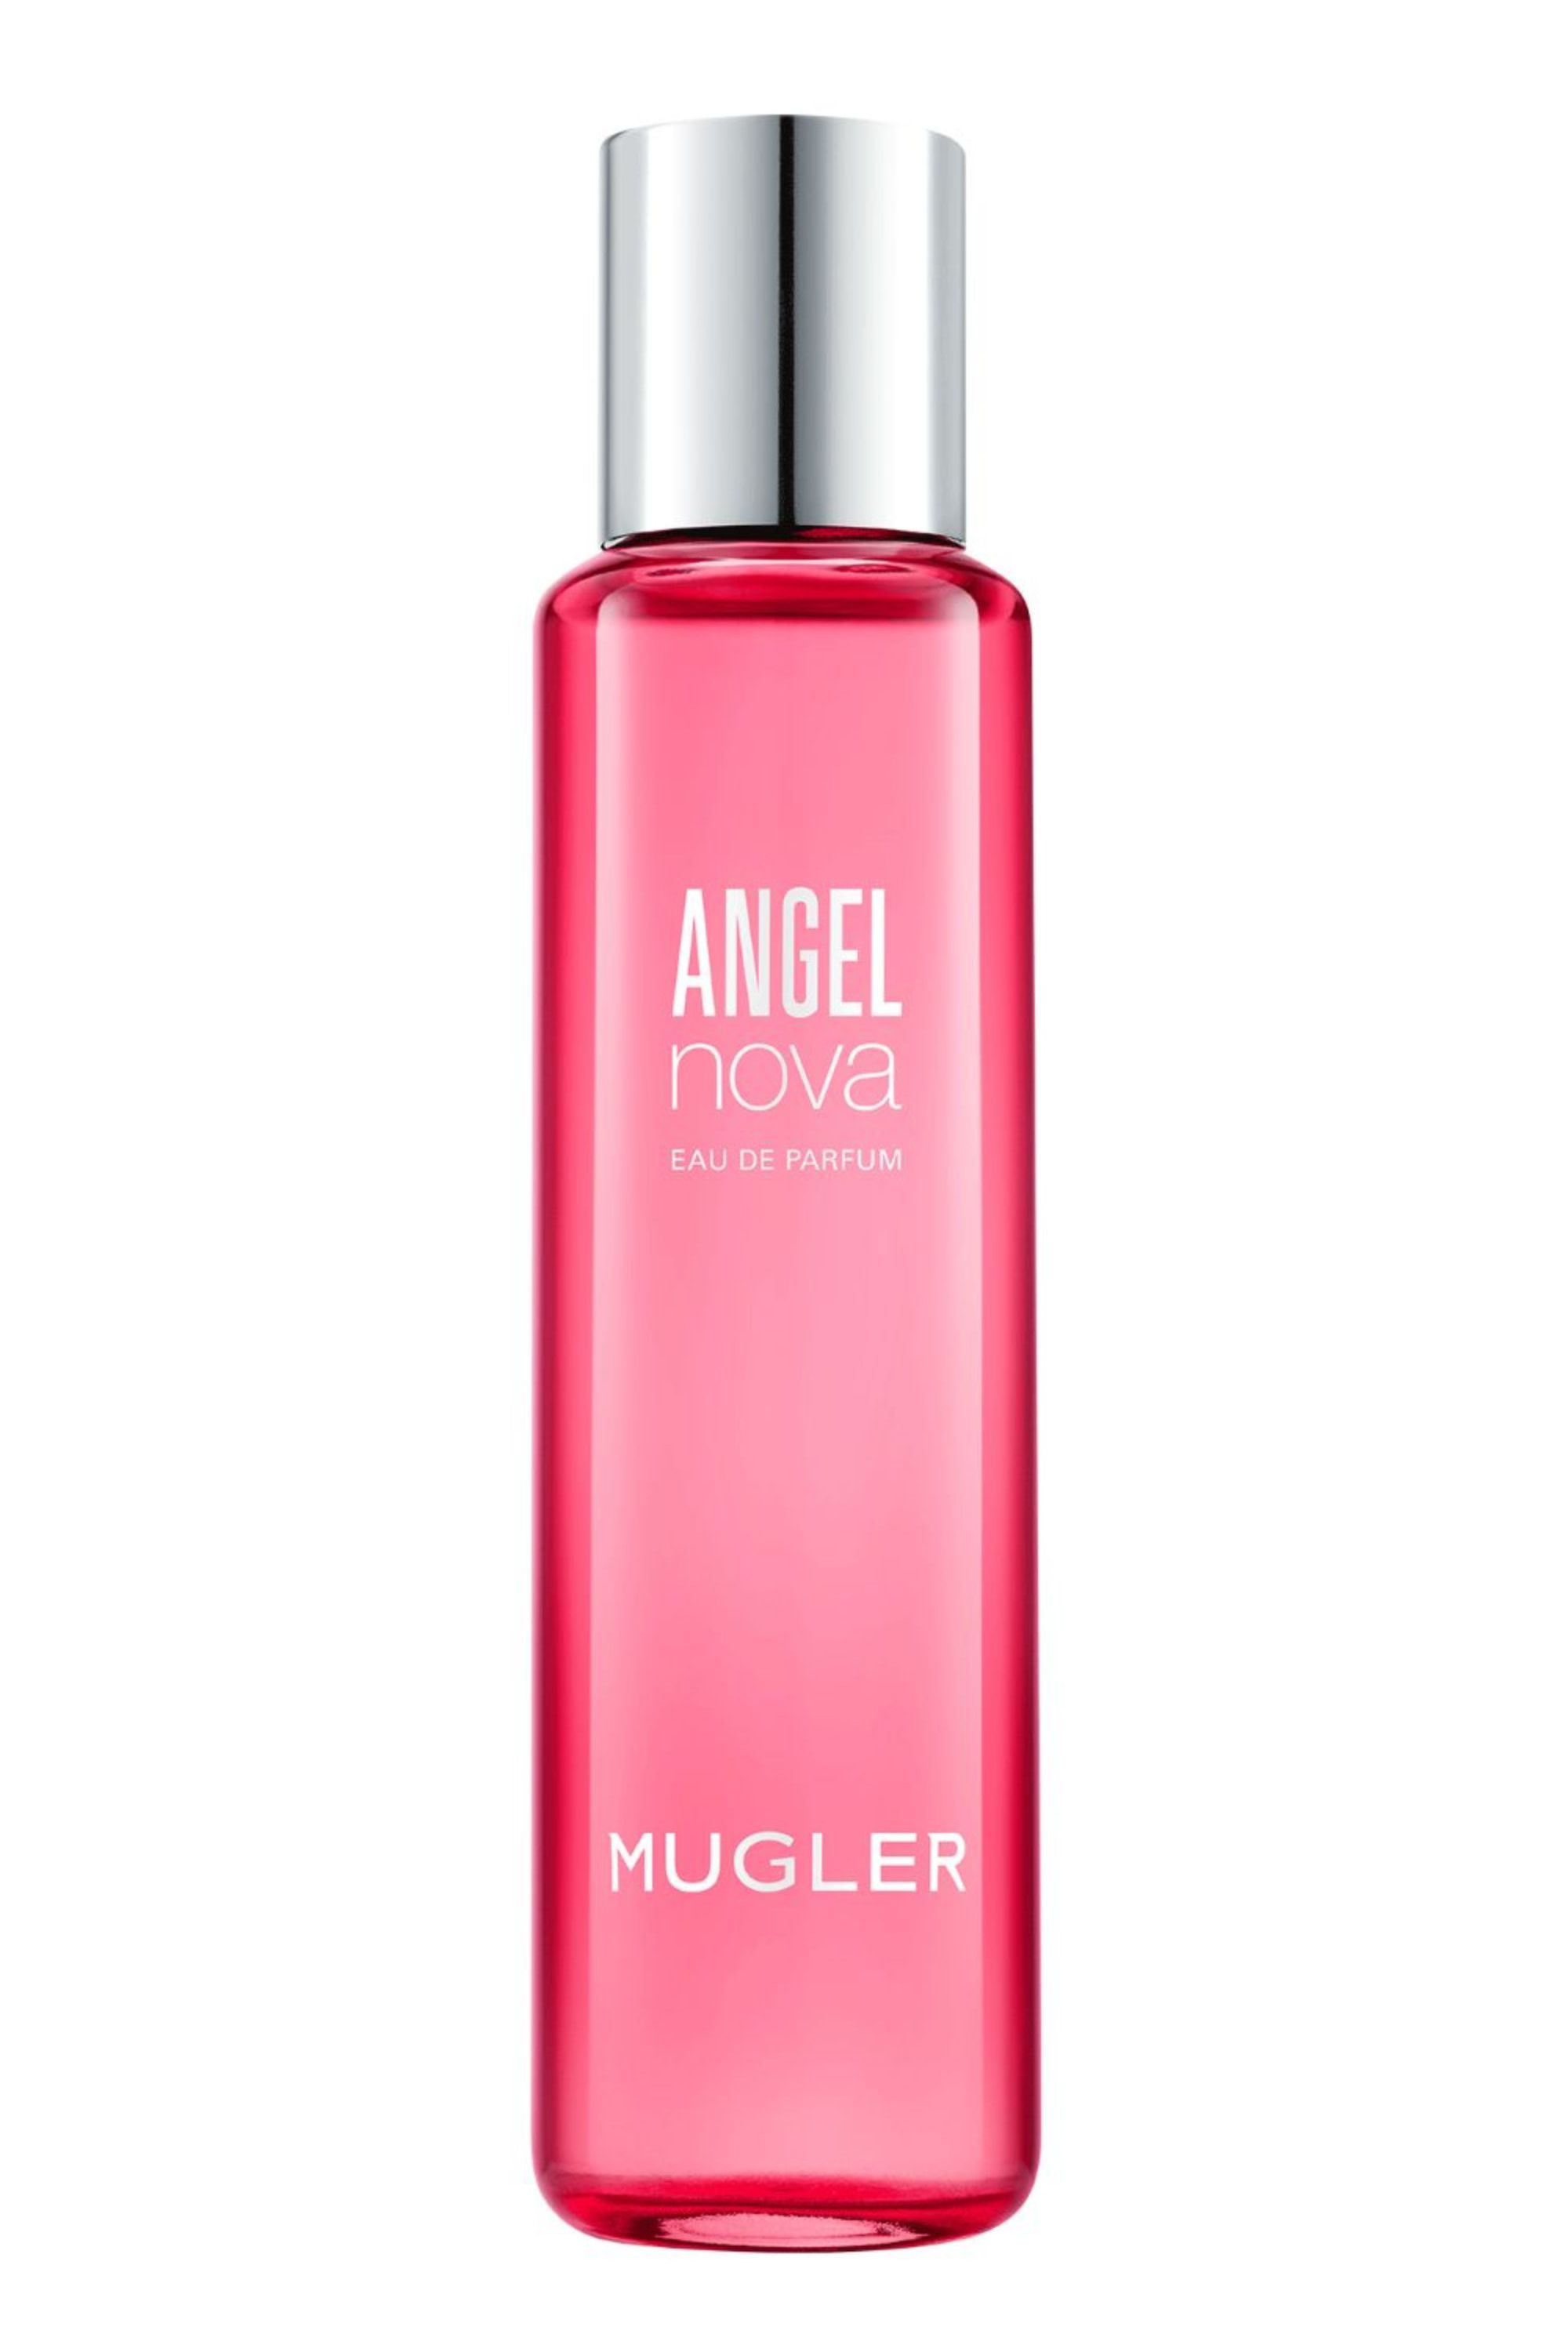 Blissim : Mugler - Eau de parfum Angel Nova - Flacon recharge 100ml